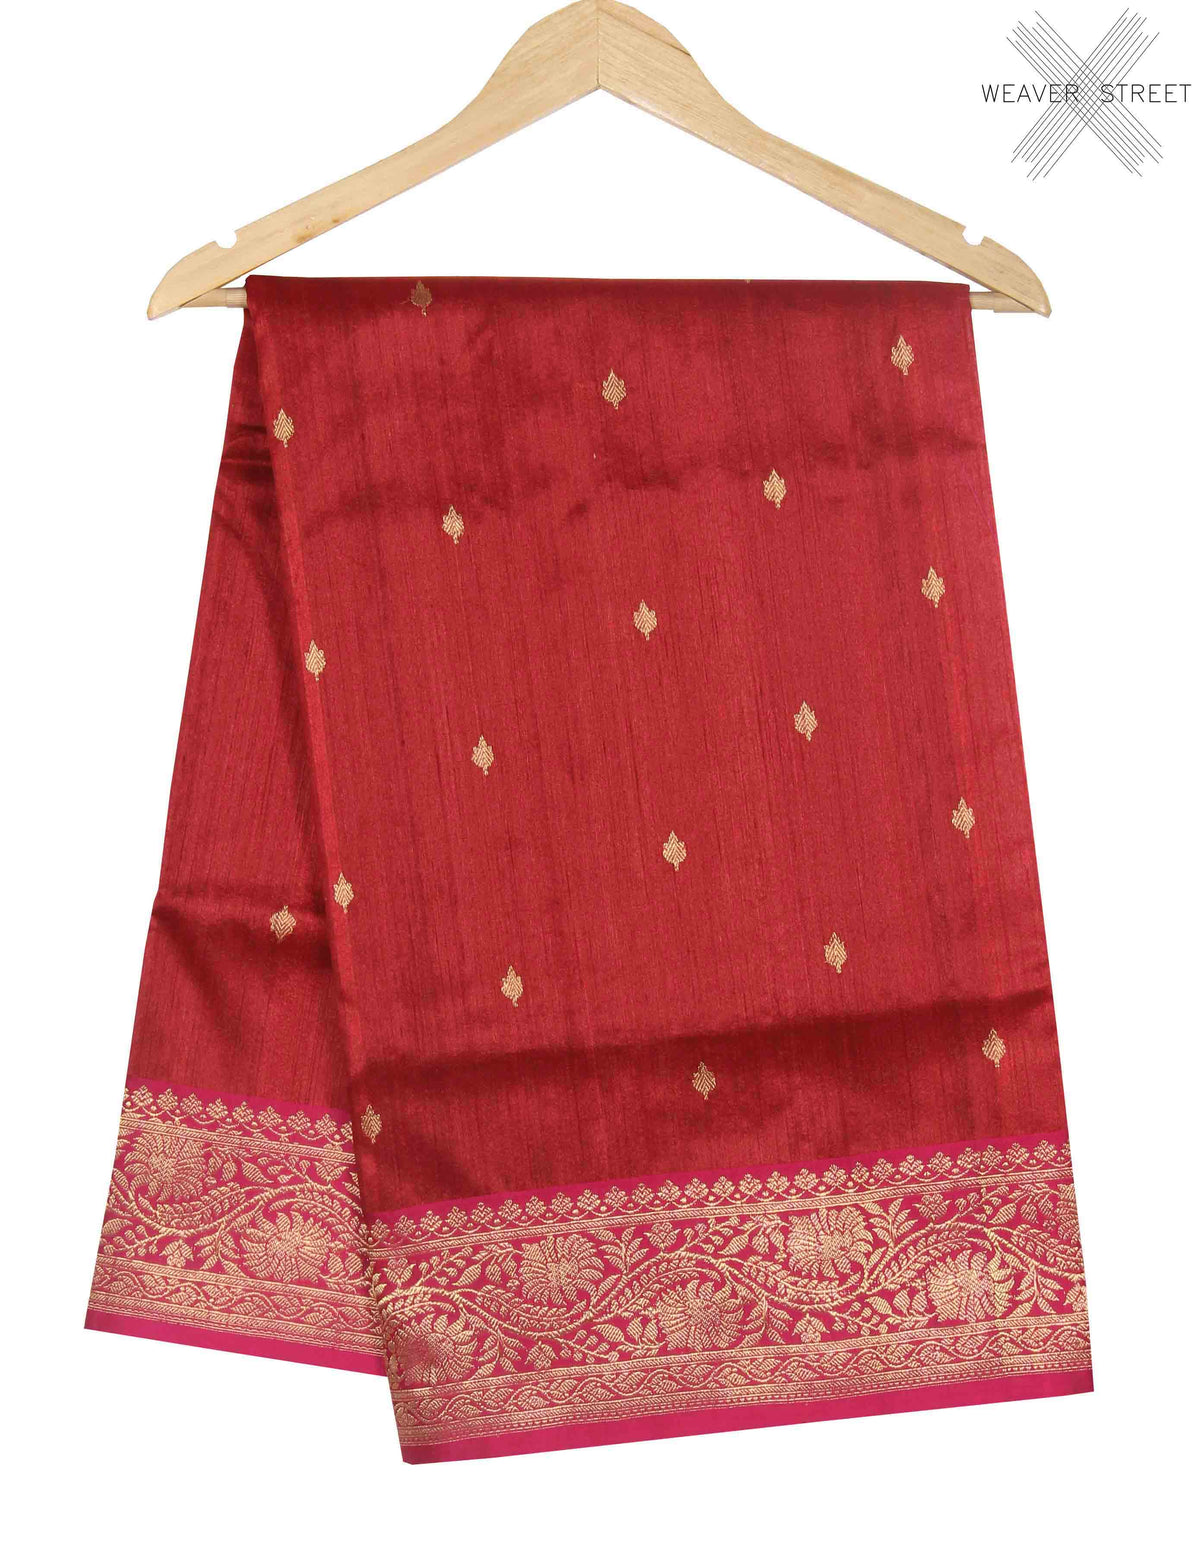 Red Tussar Silk Handwoven Banarasi Saree with mini leaf motifs (1) main